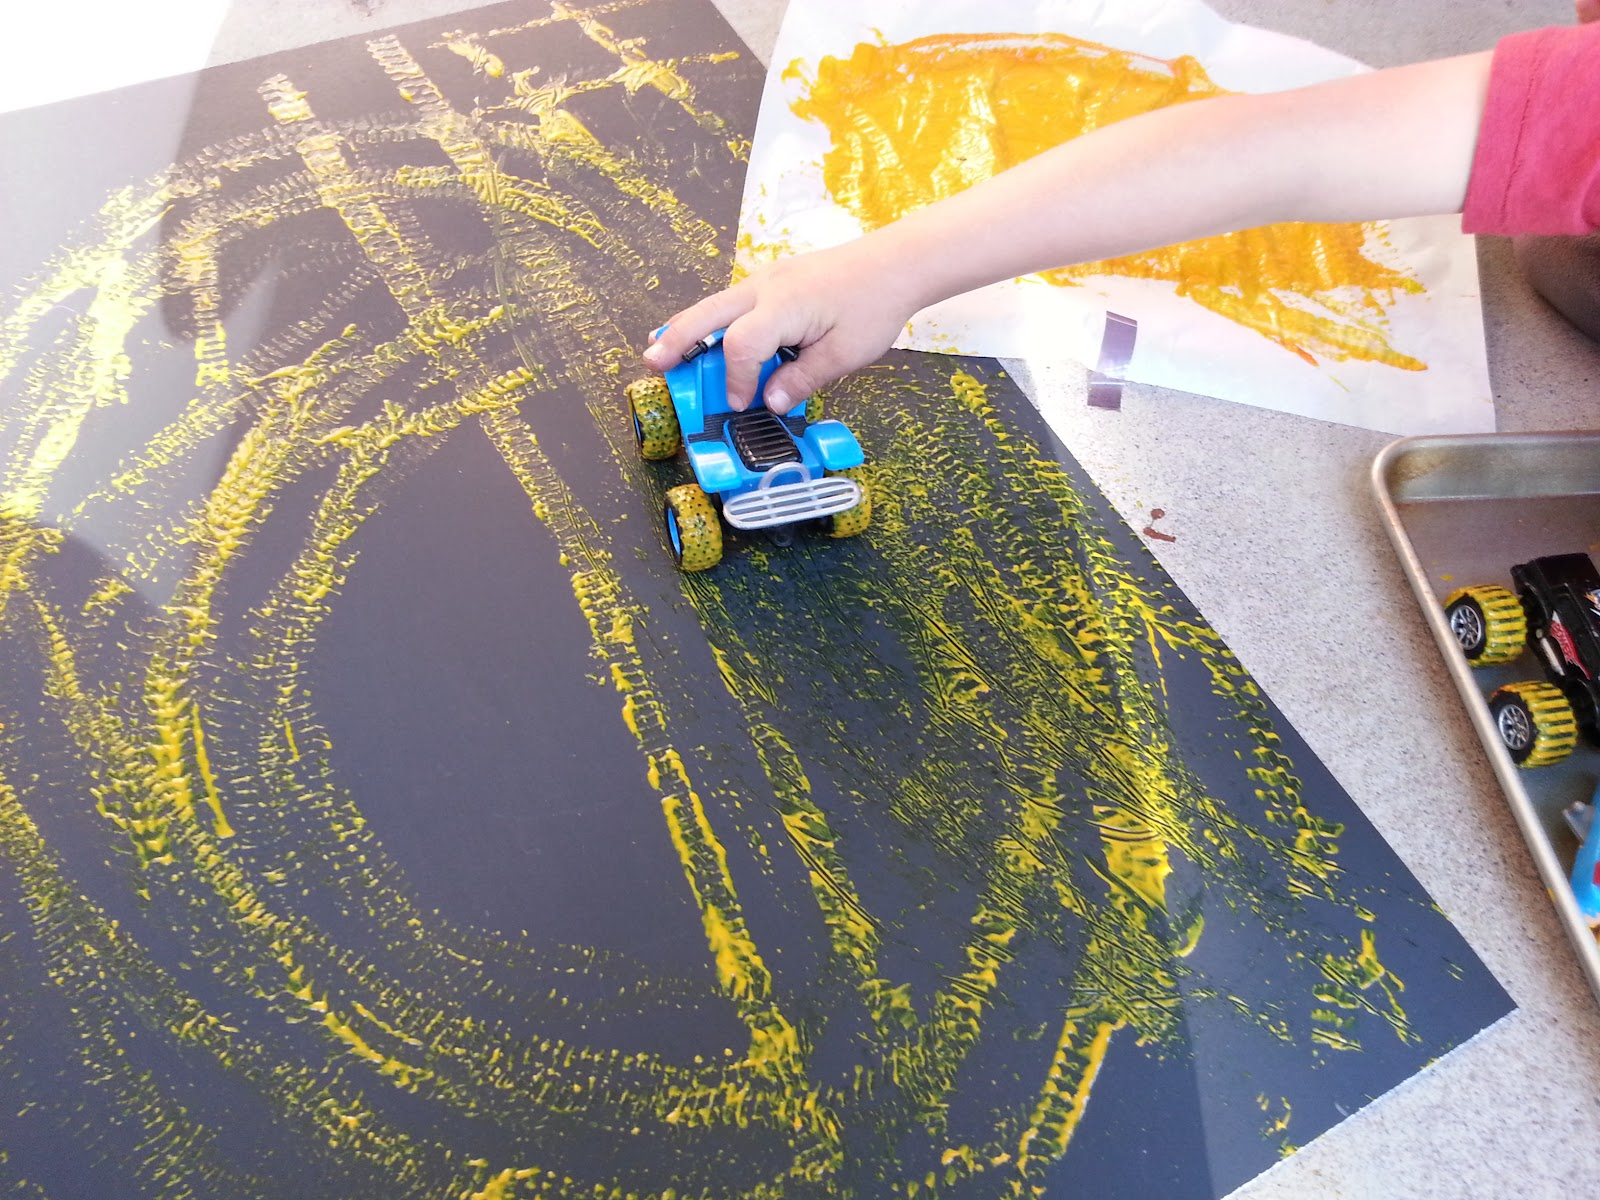 Choices For Children: Painting With Cars